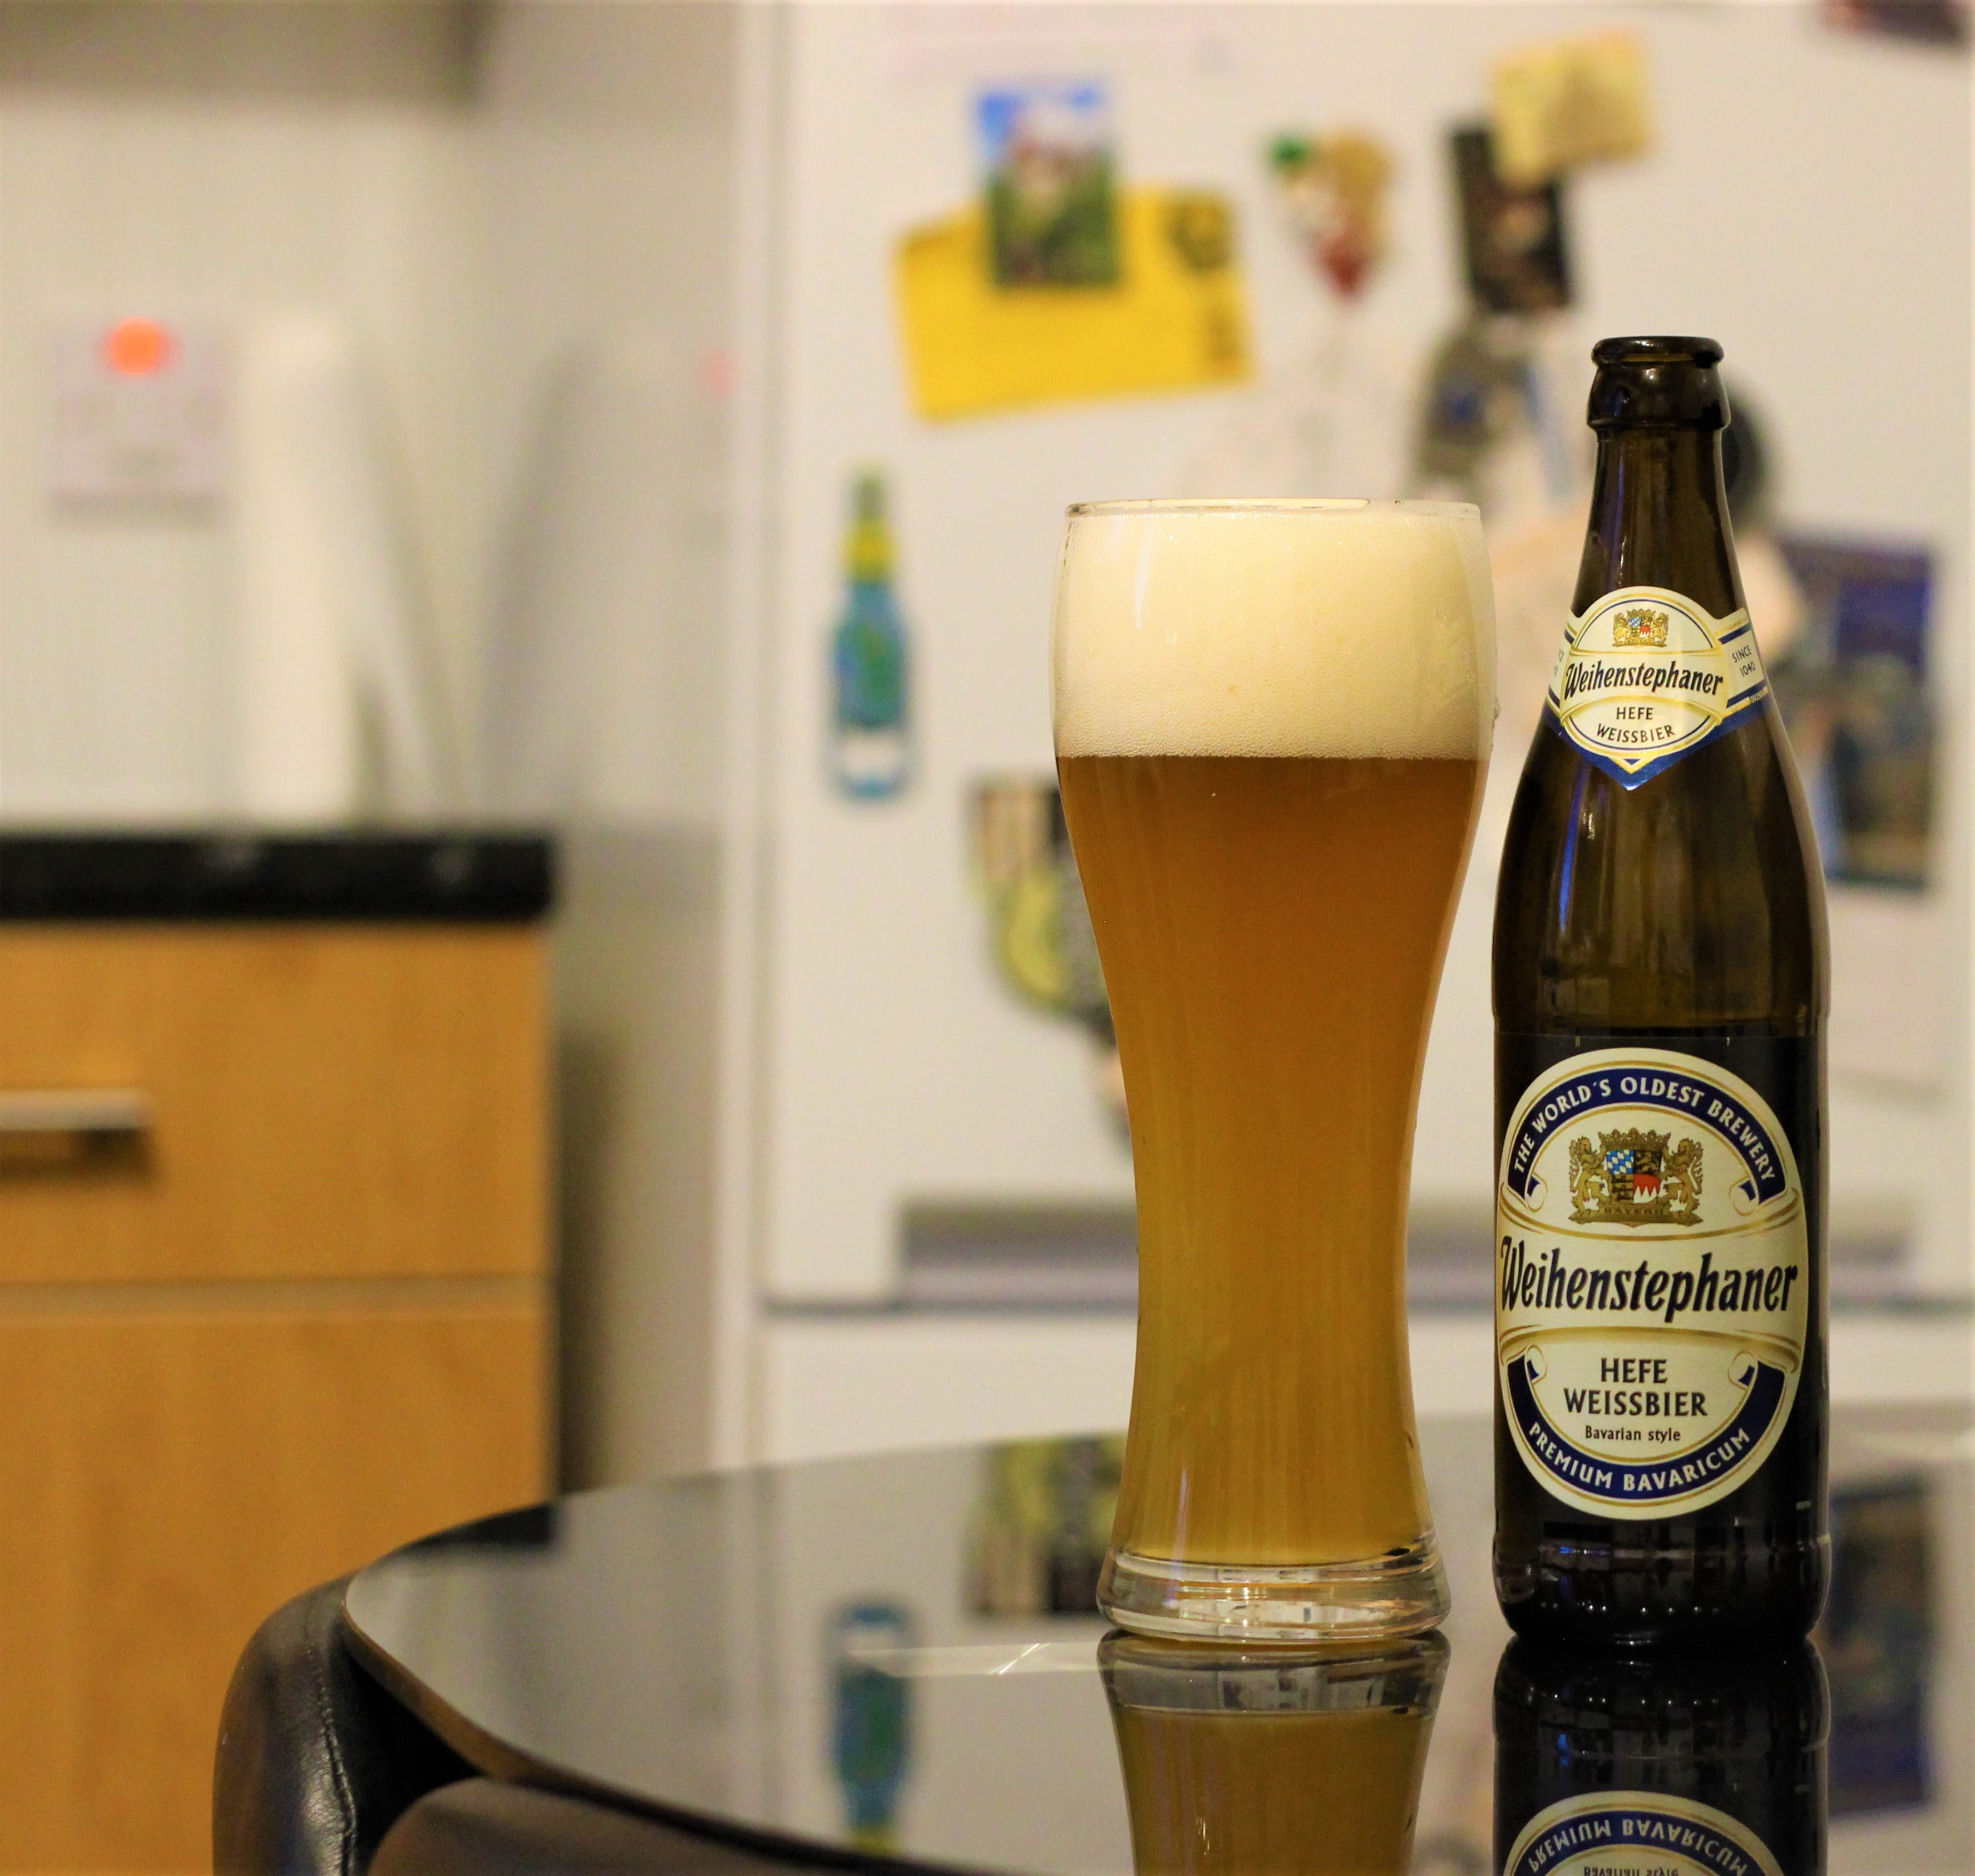 bottle of weihenstephaner sitting on a table next to a full glass of the beer